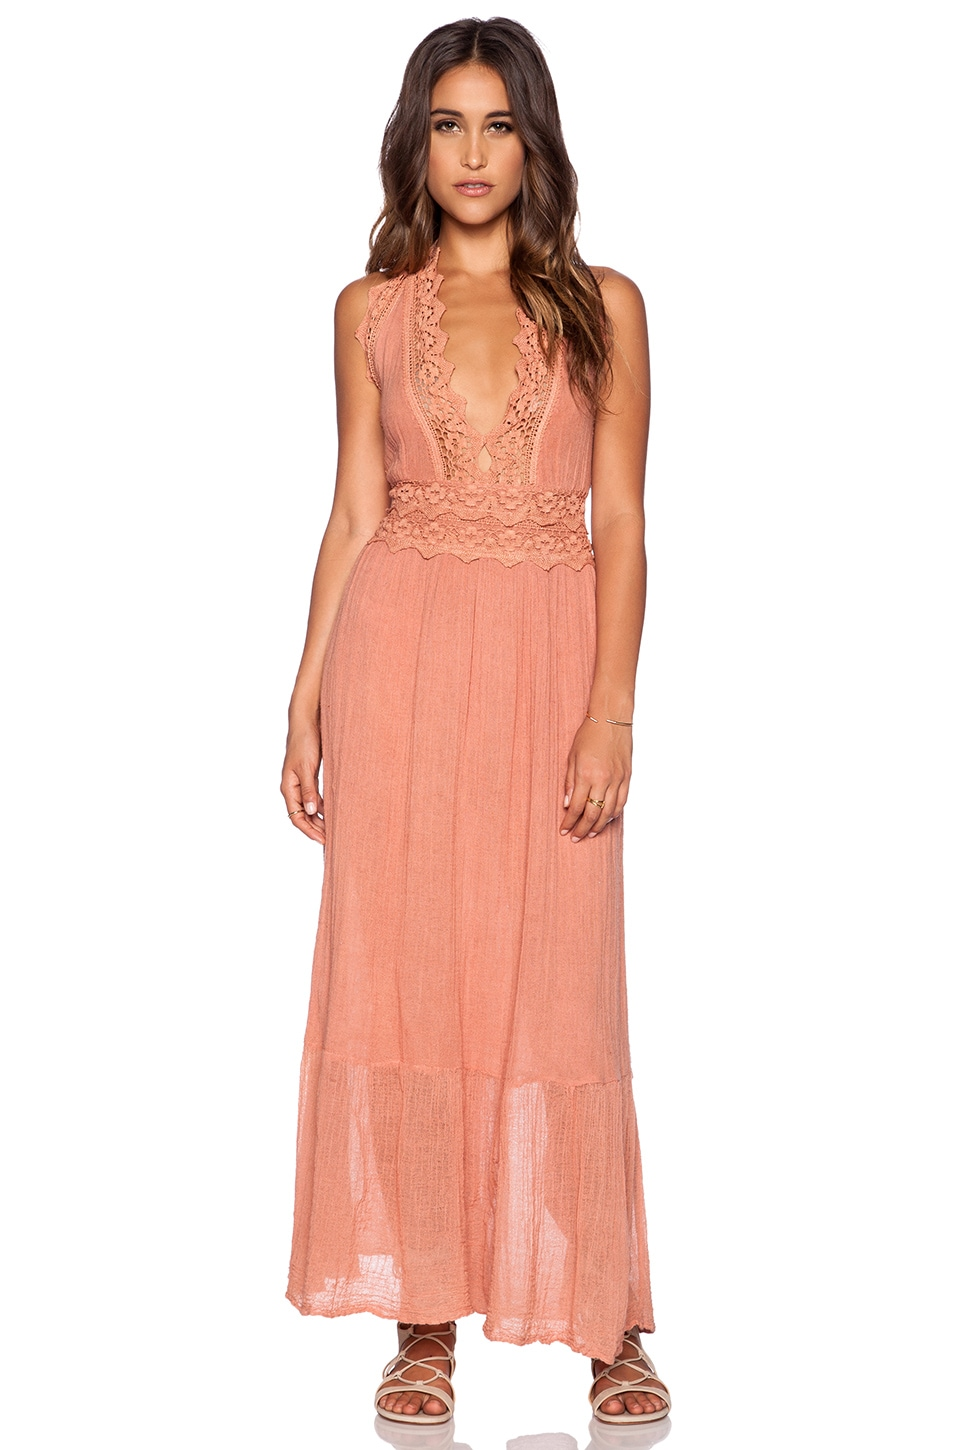 El Corazon Maxi Dress